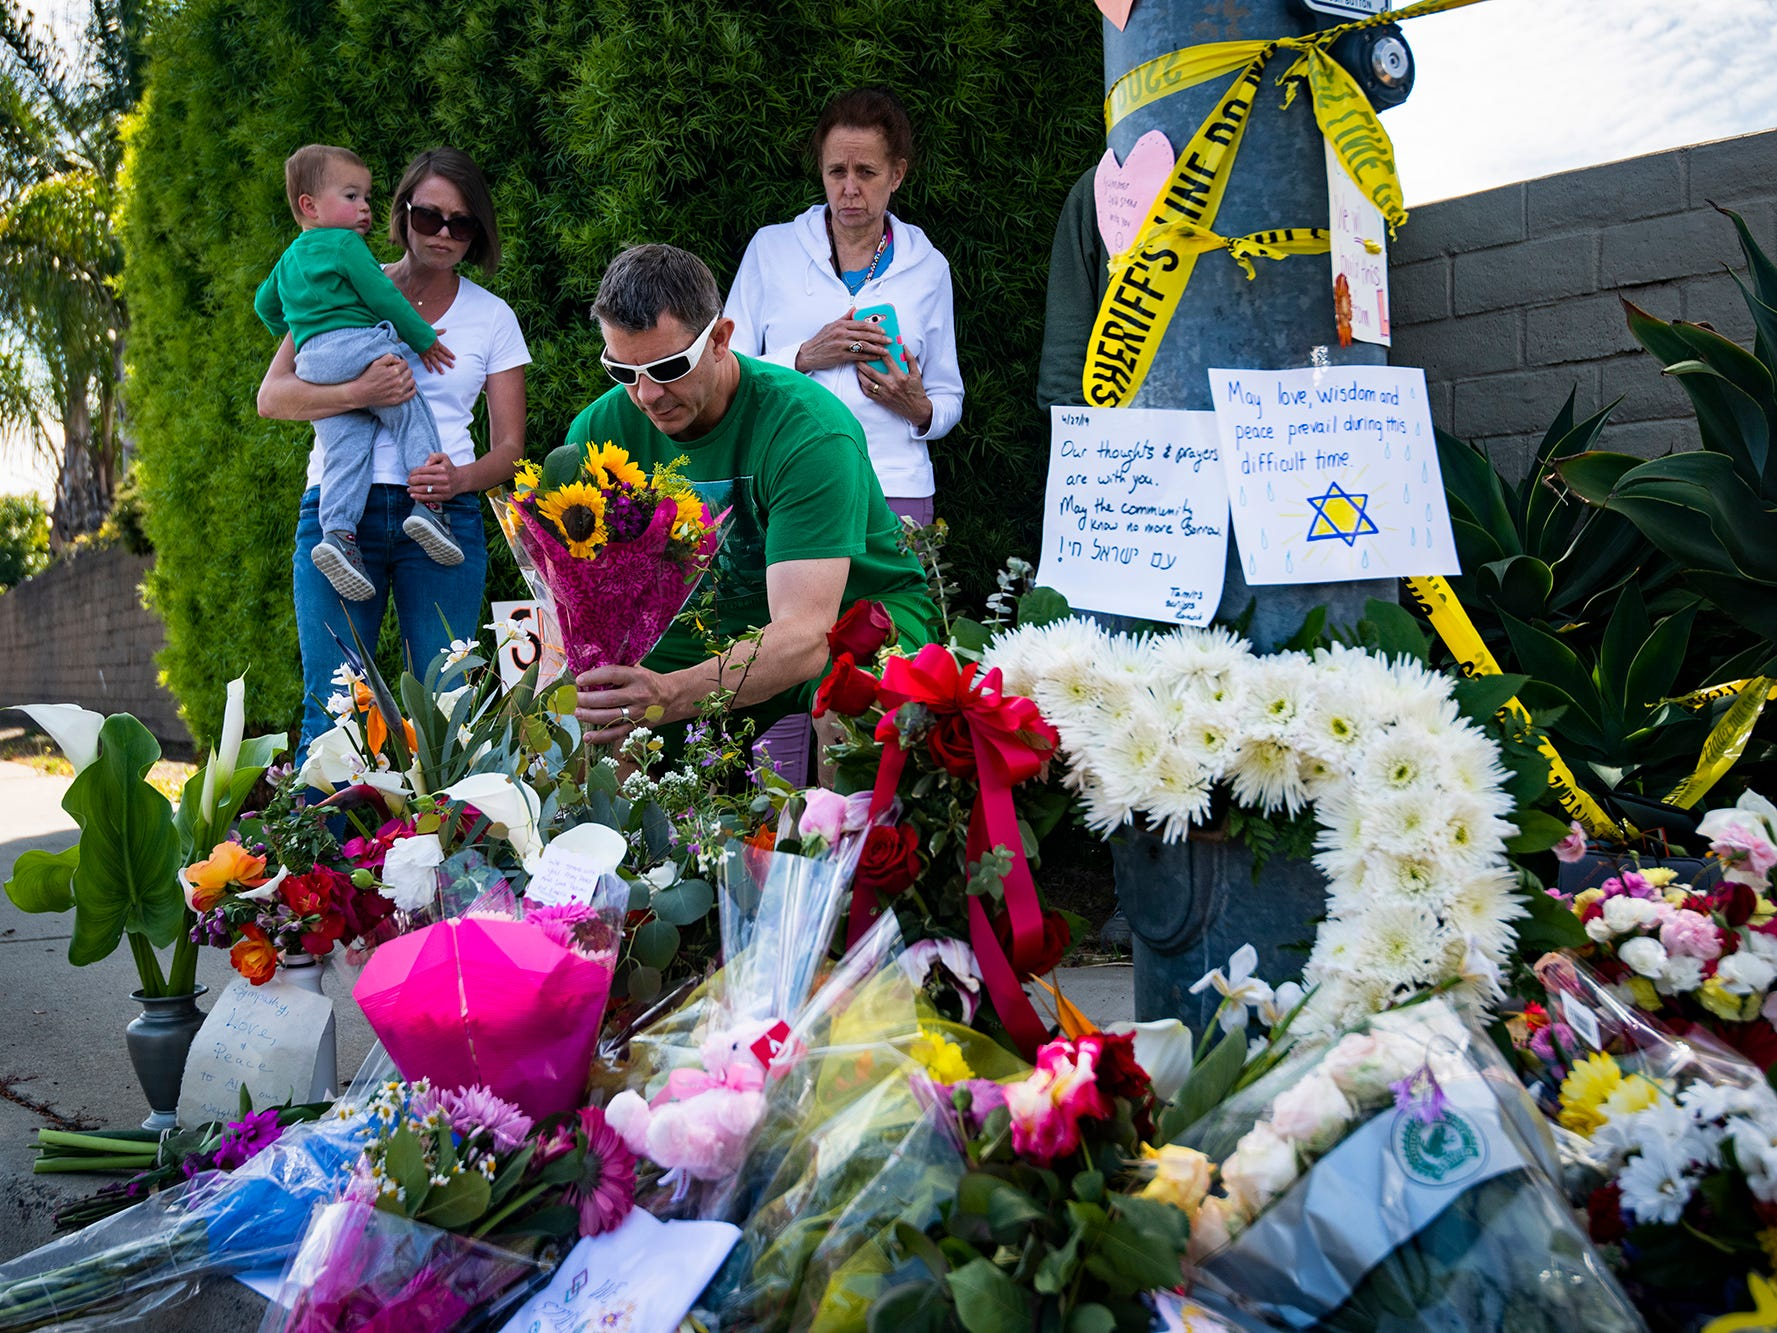 San Diego resident James Carmey places flowers at the memorial across the street from Chabad of Poway synagogue in Poway, Calif. on April 28, 2019.